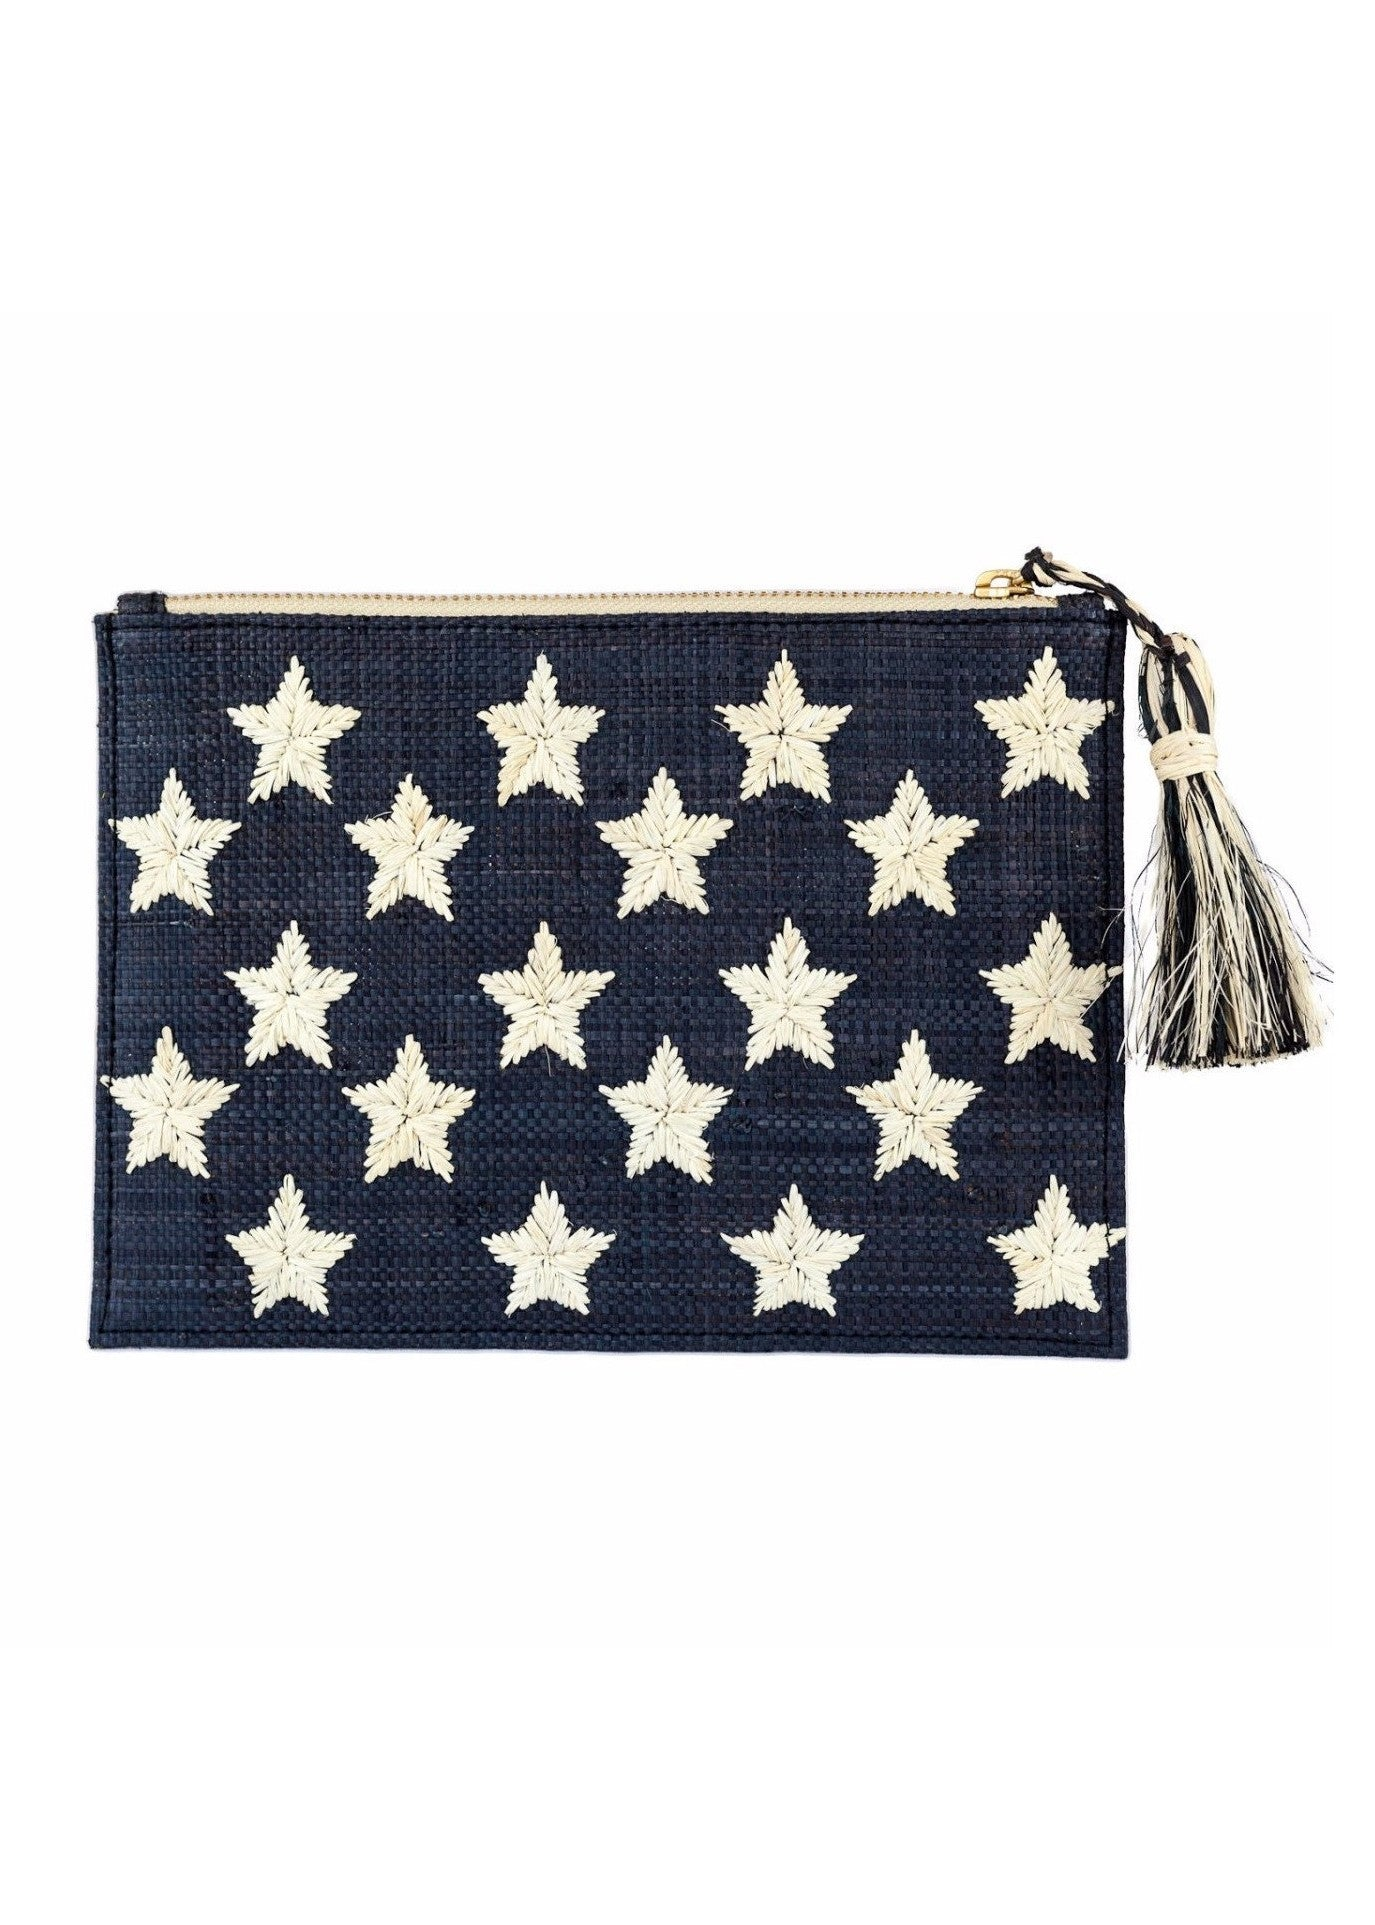 Kayu star pouch black